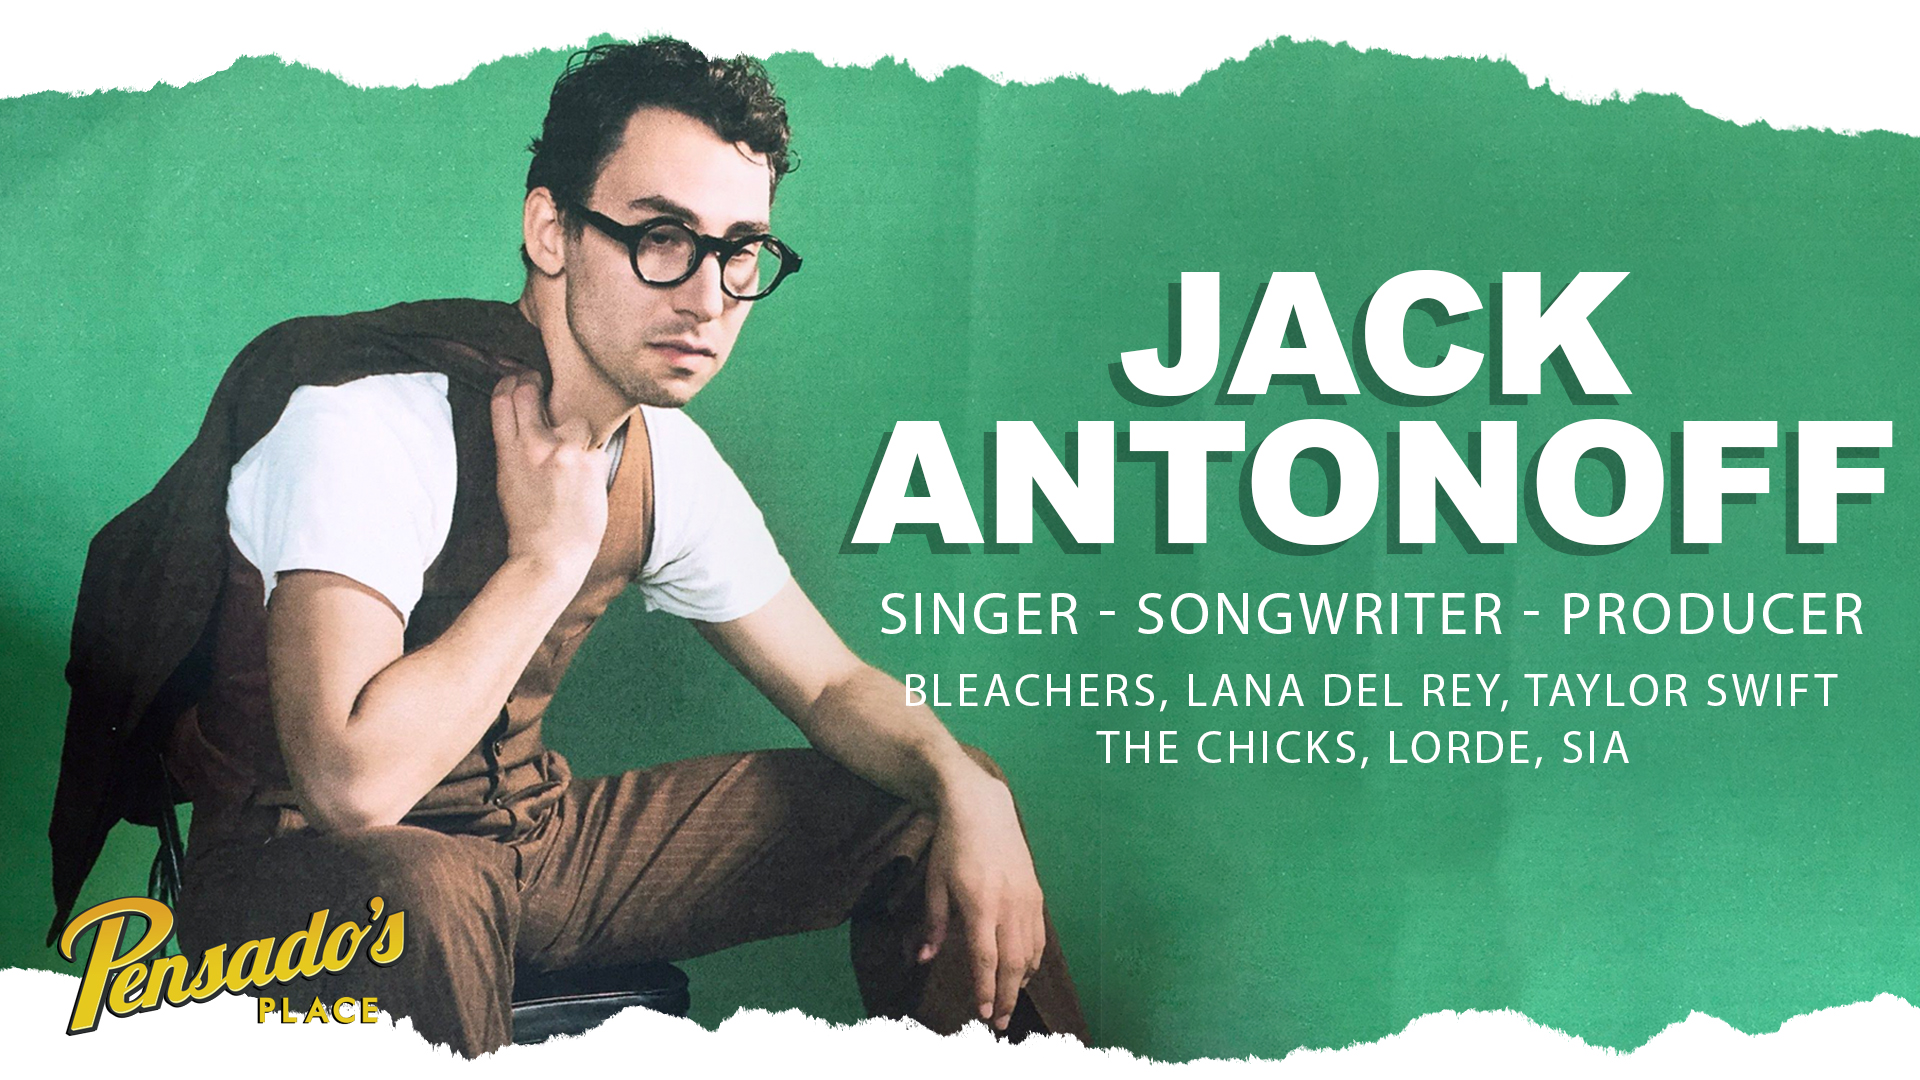 Singer / Songwriter / Producer, Jack Antonoff